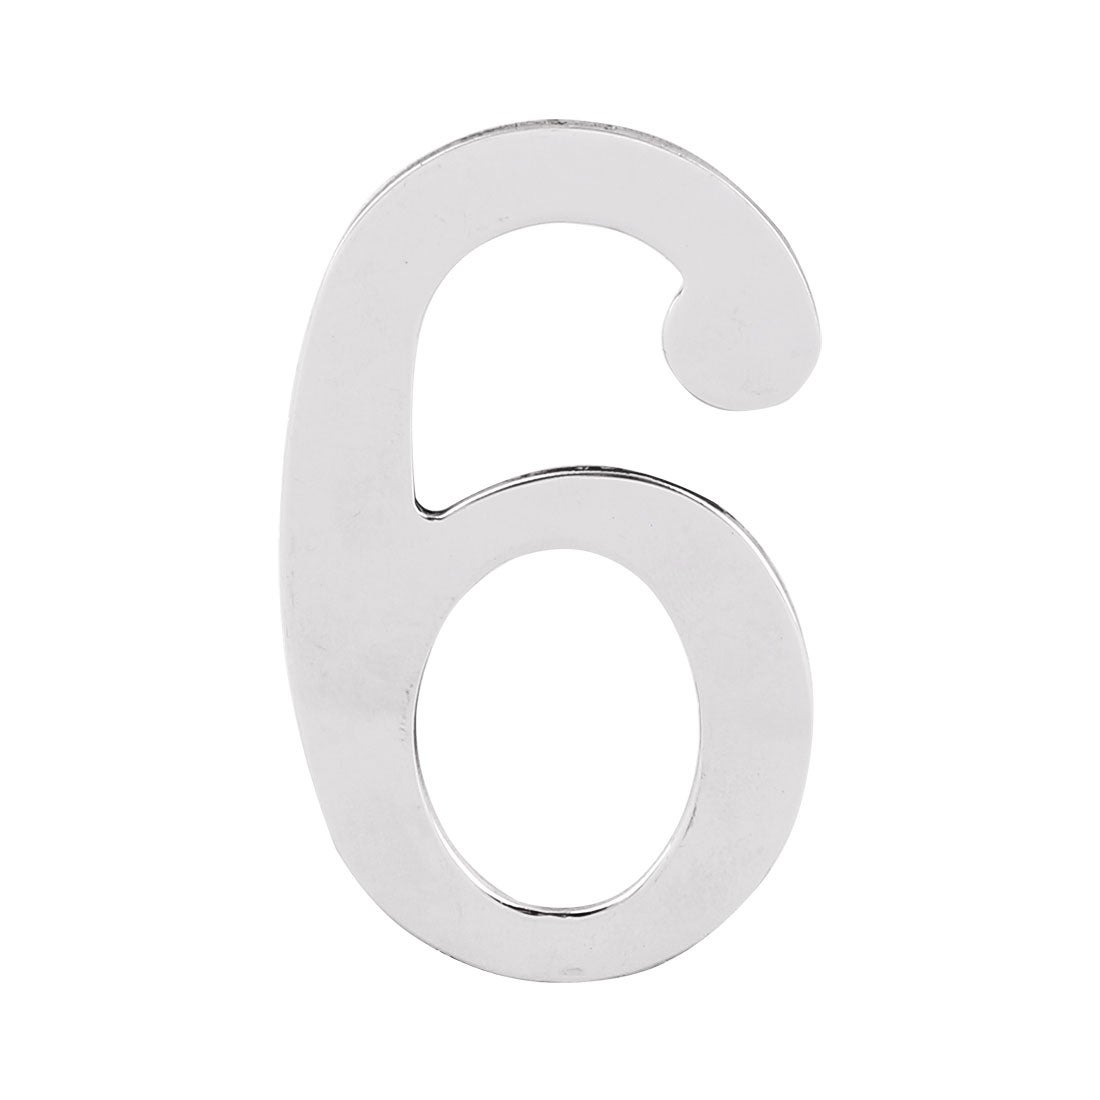 Home Hotel Door Stainless Steel 6 Shaped Number Sticker Label Sign Silver Tone